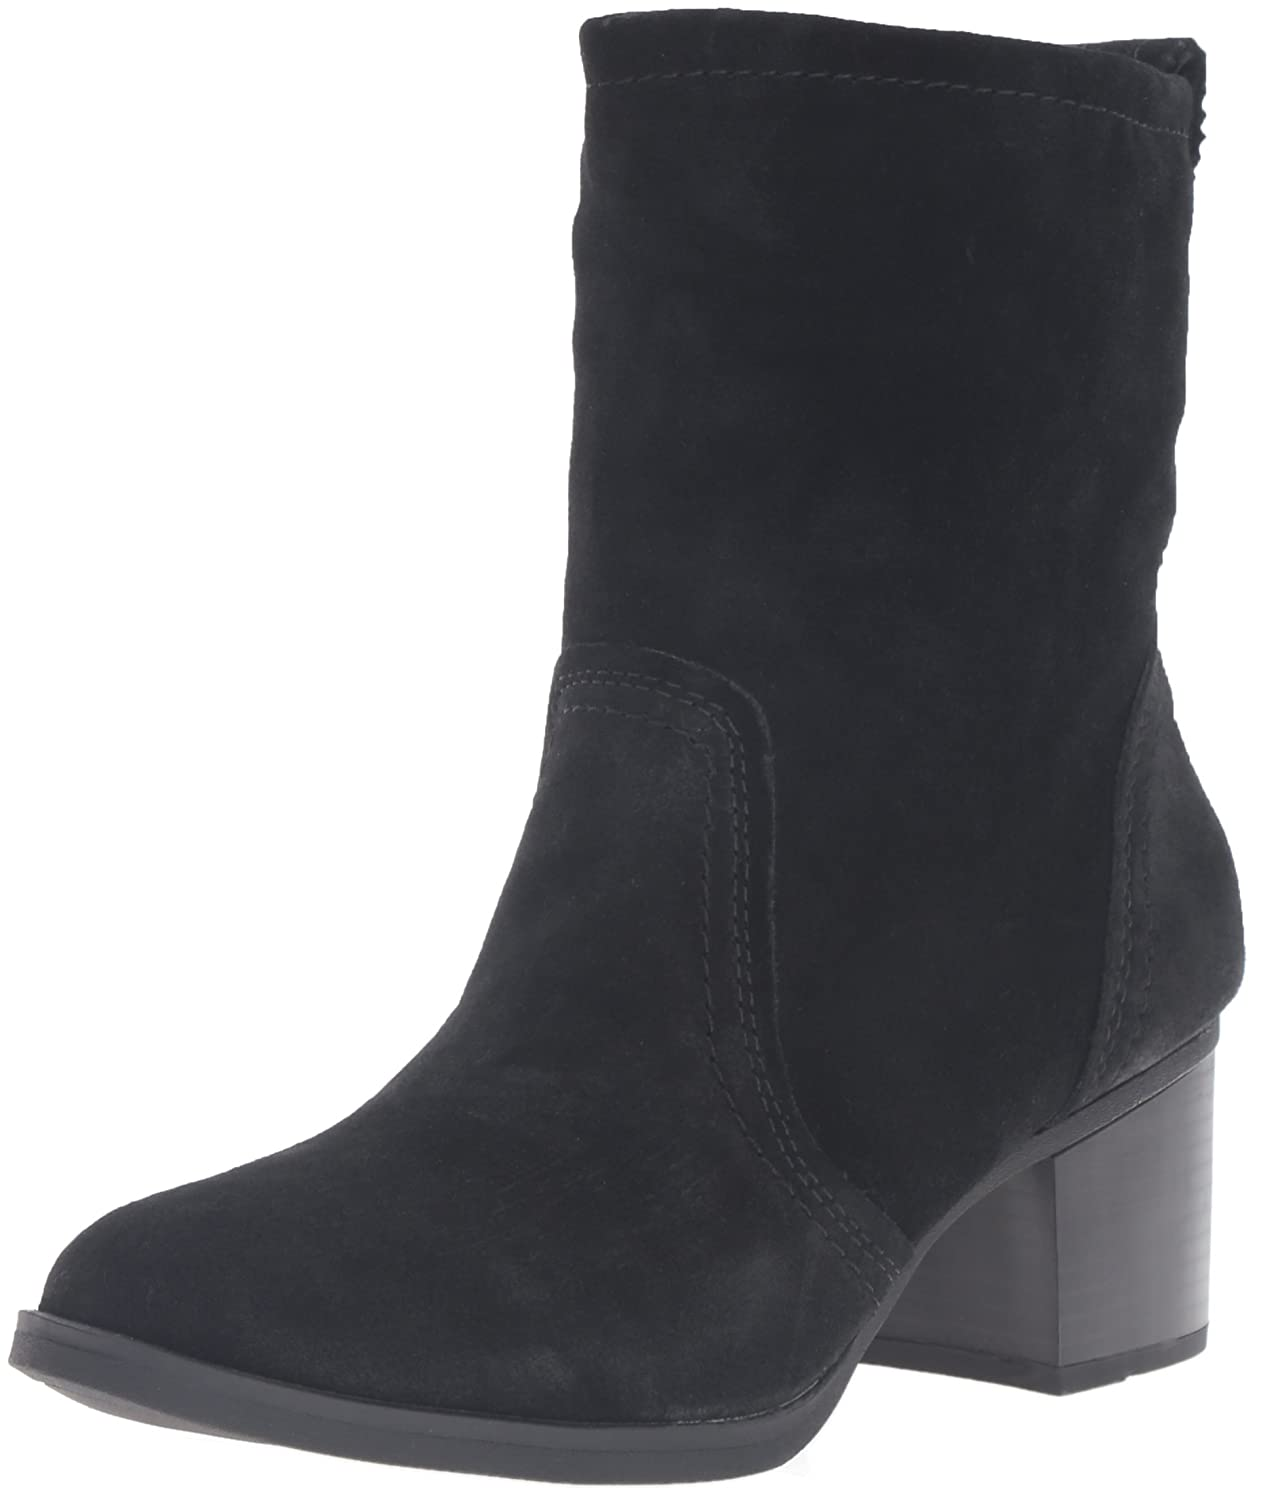 WHITE MOUNTAIN Women's Behari Ankle Bootie B01DSOX4BQ 7.5 B(M) US|Black